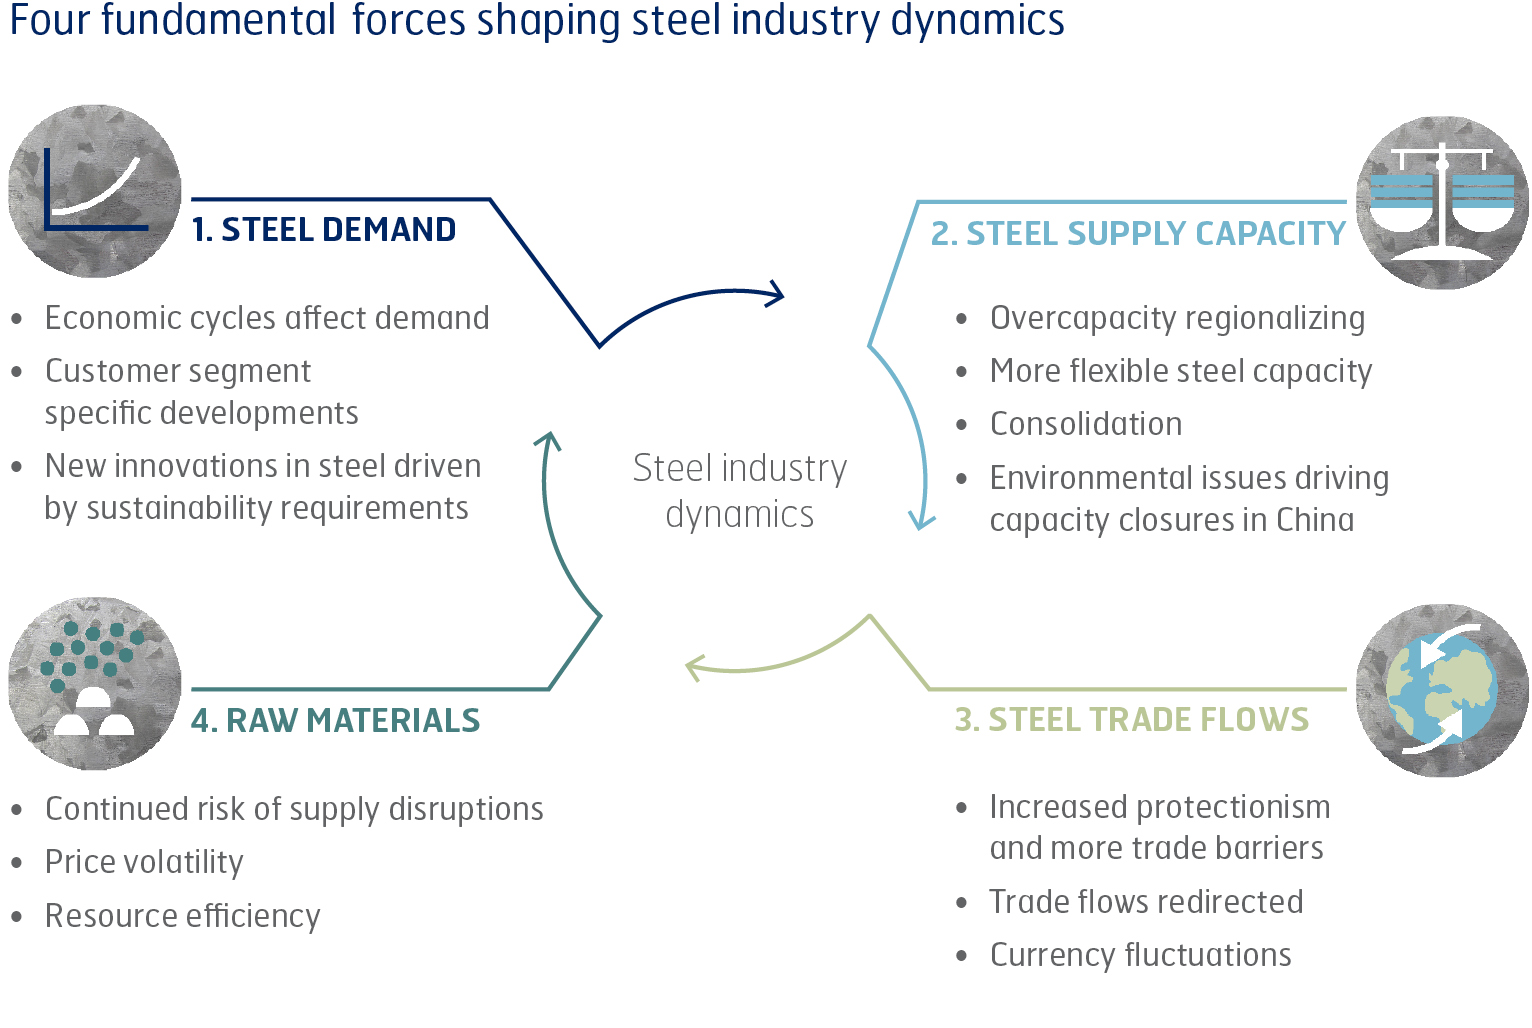 SSAB Four fundamental forces shaping steel industry dynamics chart